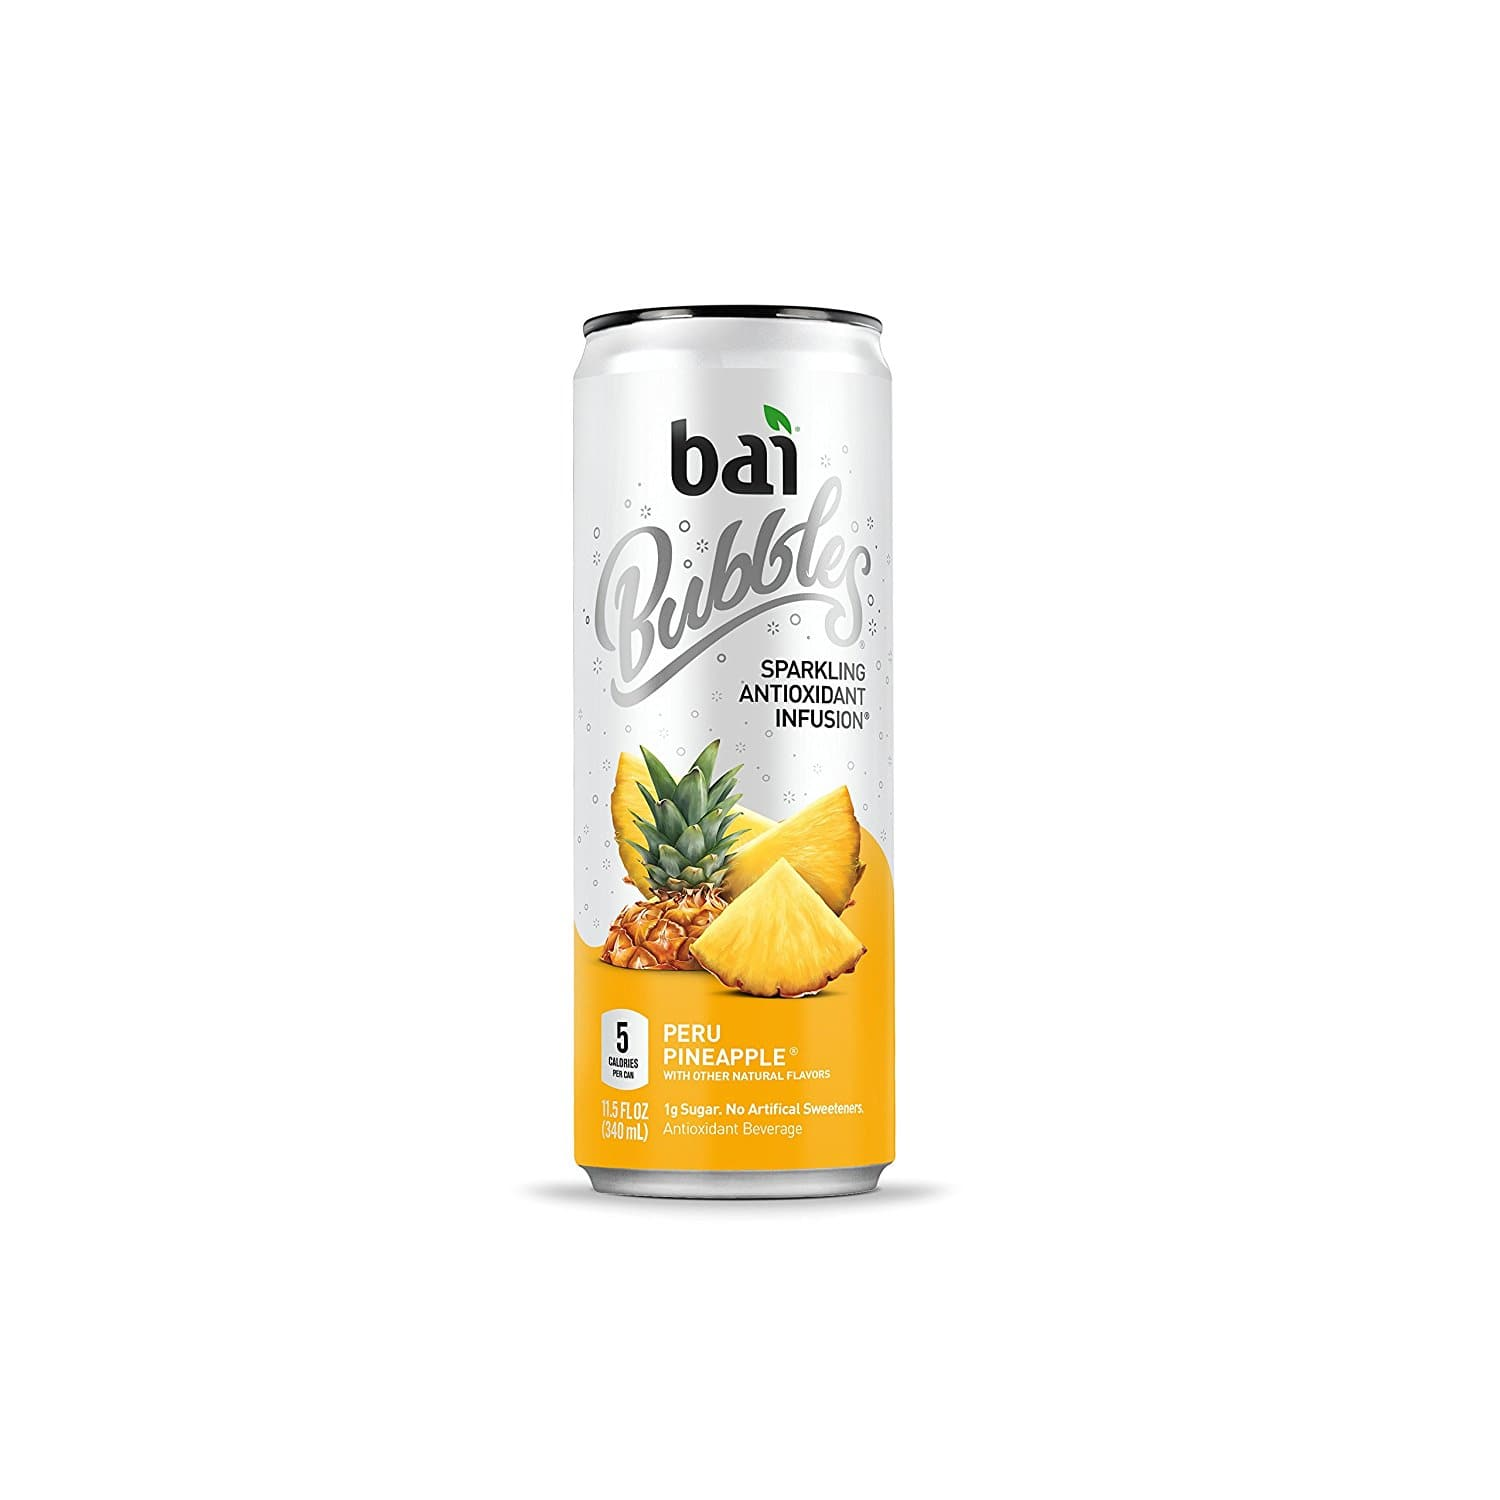 12-Pack of 11.5oz Bai Bubbles Antioxidant Infused Sparkling Water Drinks (Peru Pineapple) $9.75 or Less w/ S&S + Free Shipping ~ Amazon